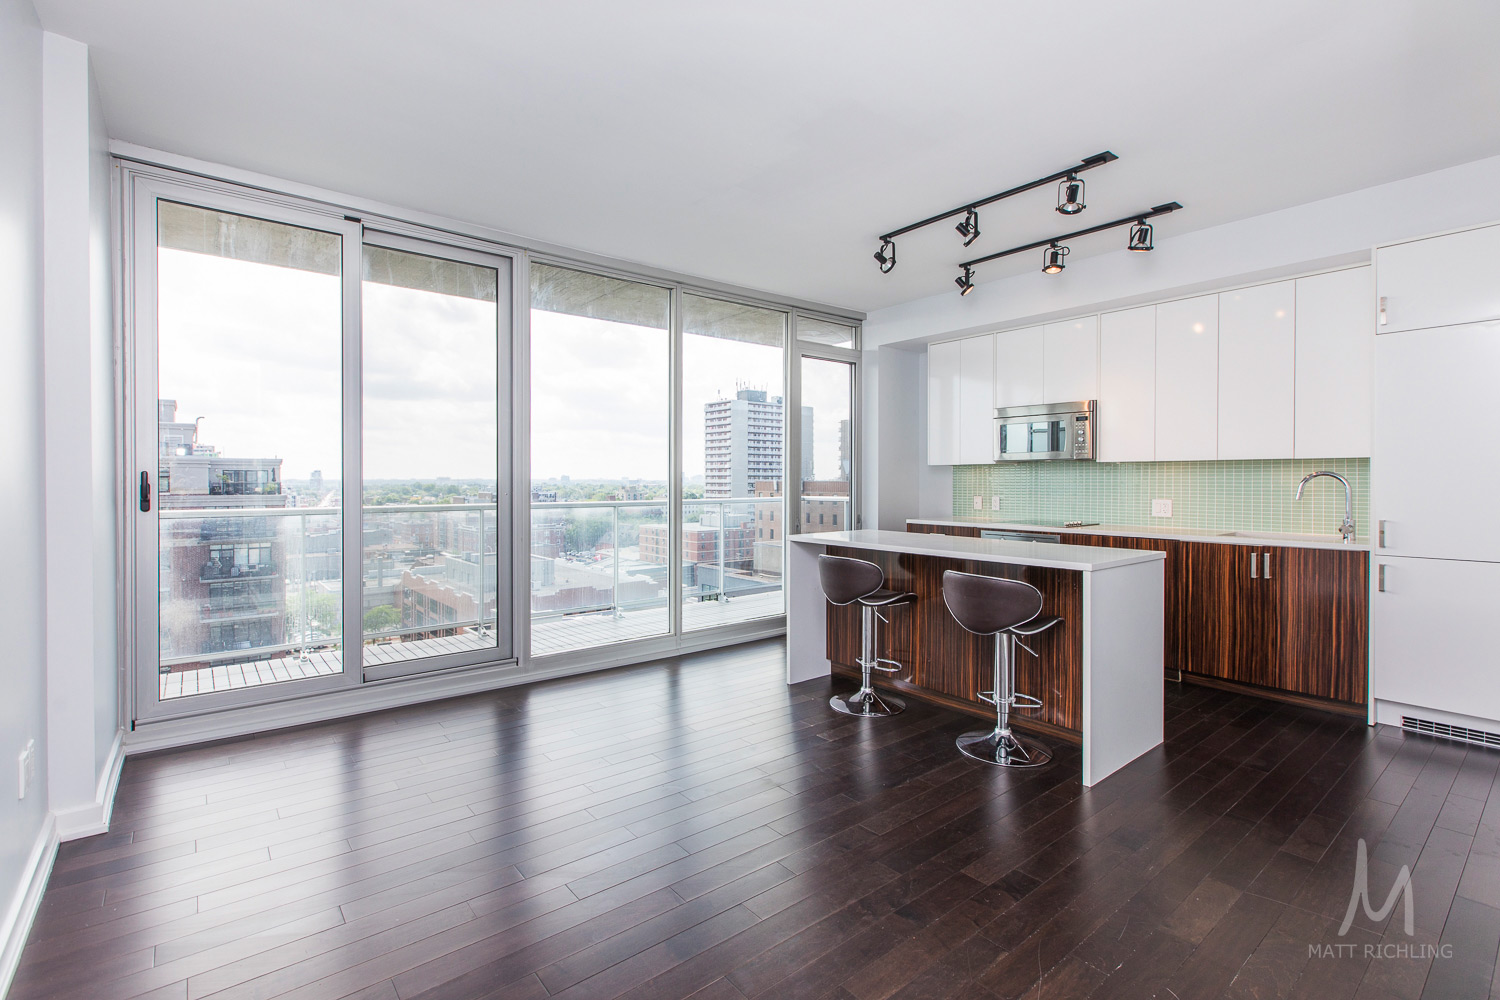 SOHO Lisgar Ottawa Condo For Sale.jpg